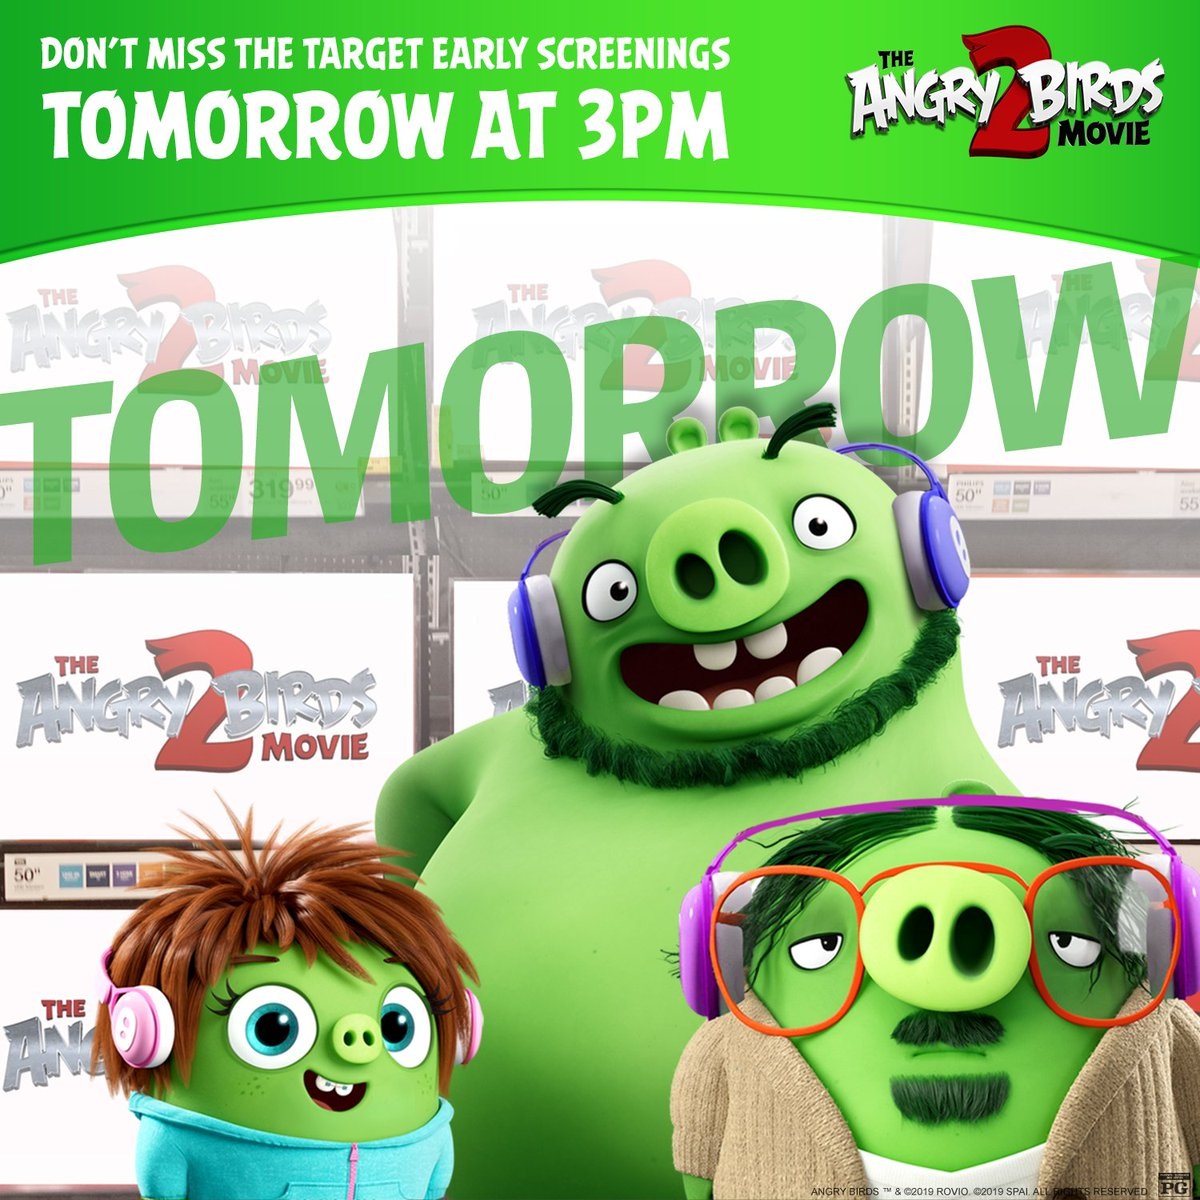 The Angry Birds Movie 2 On Twitter Listen Up Target Early Bird